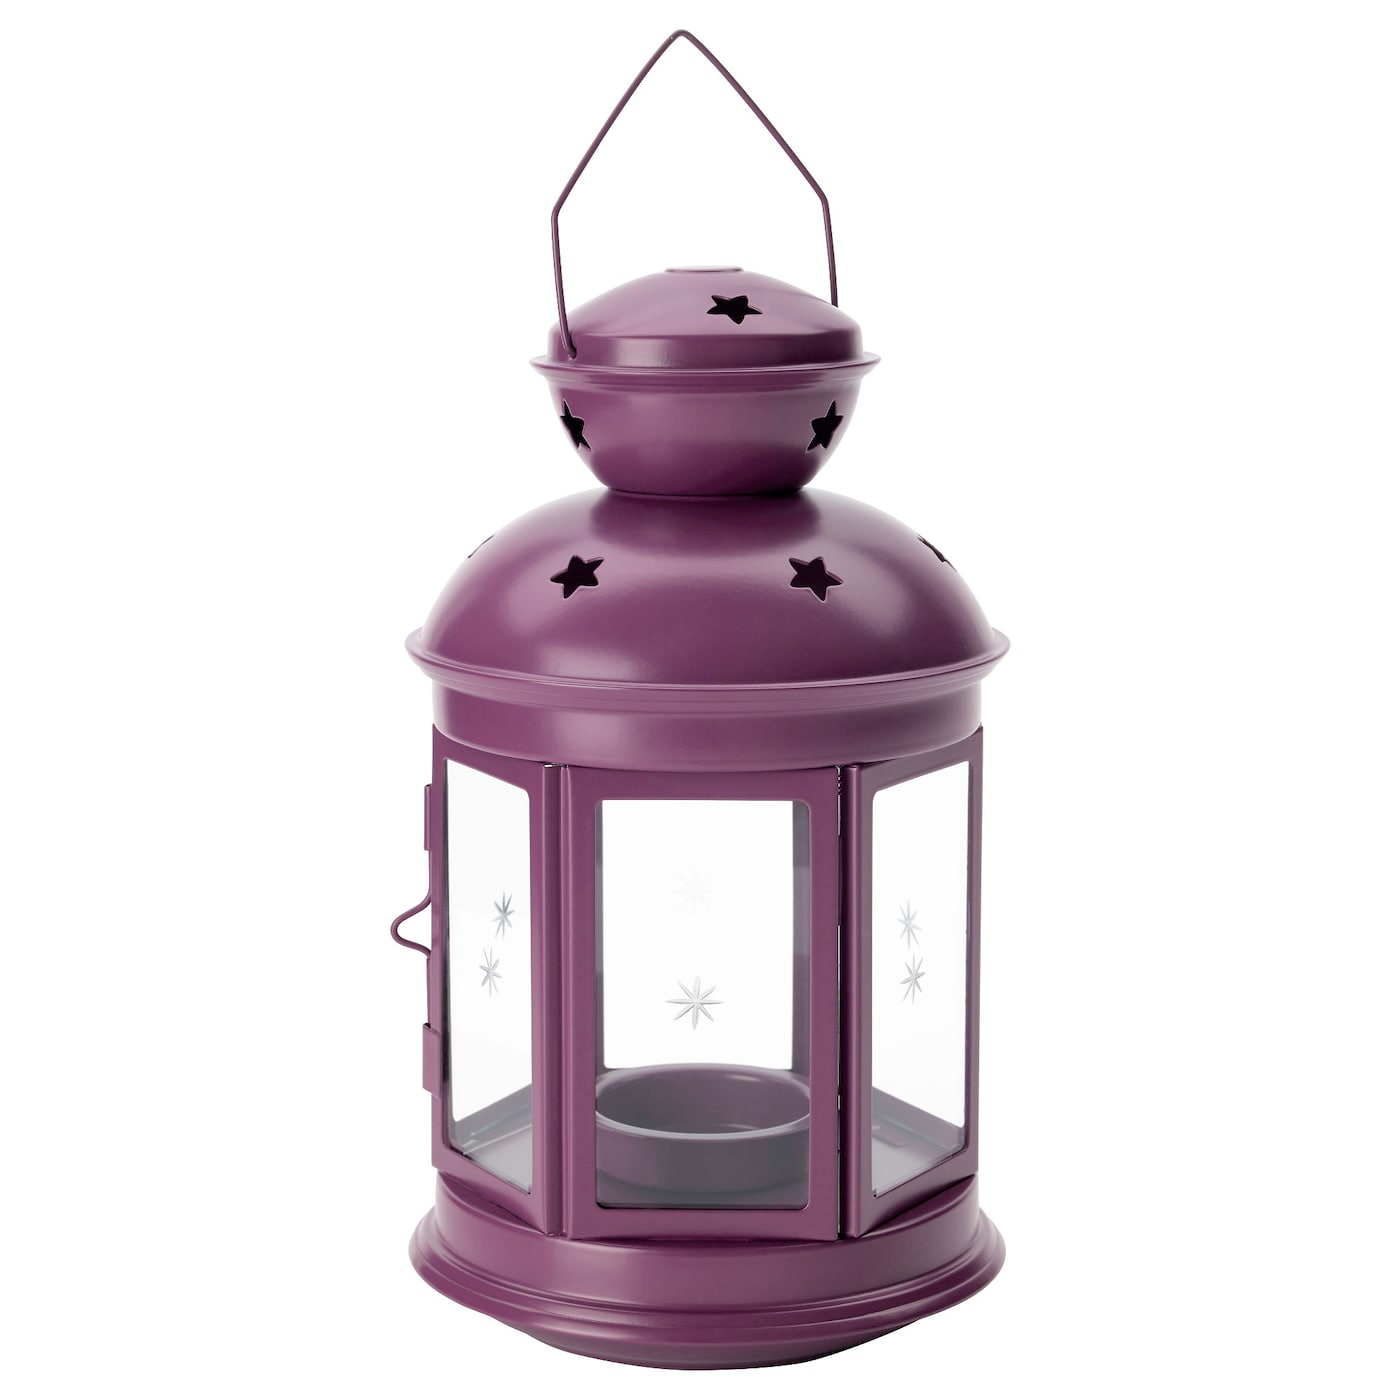 IKEA ROTERA lantern for tealight, in/outdoor Suitable for both indoor and outdoor use.